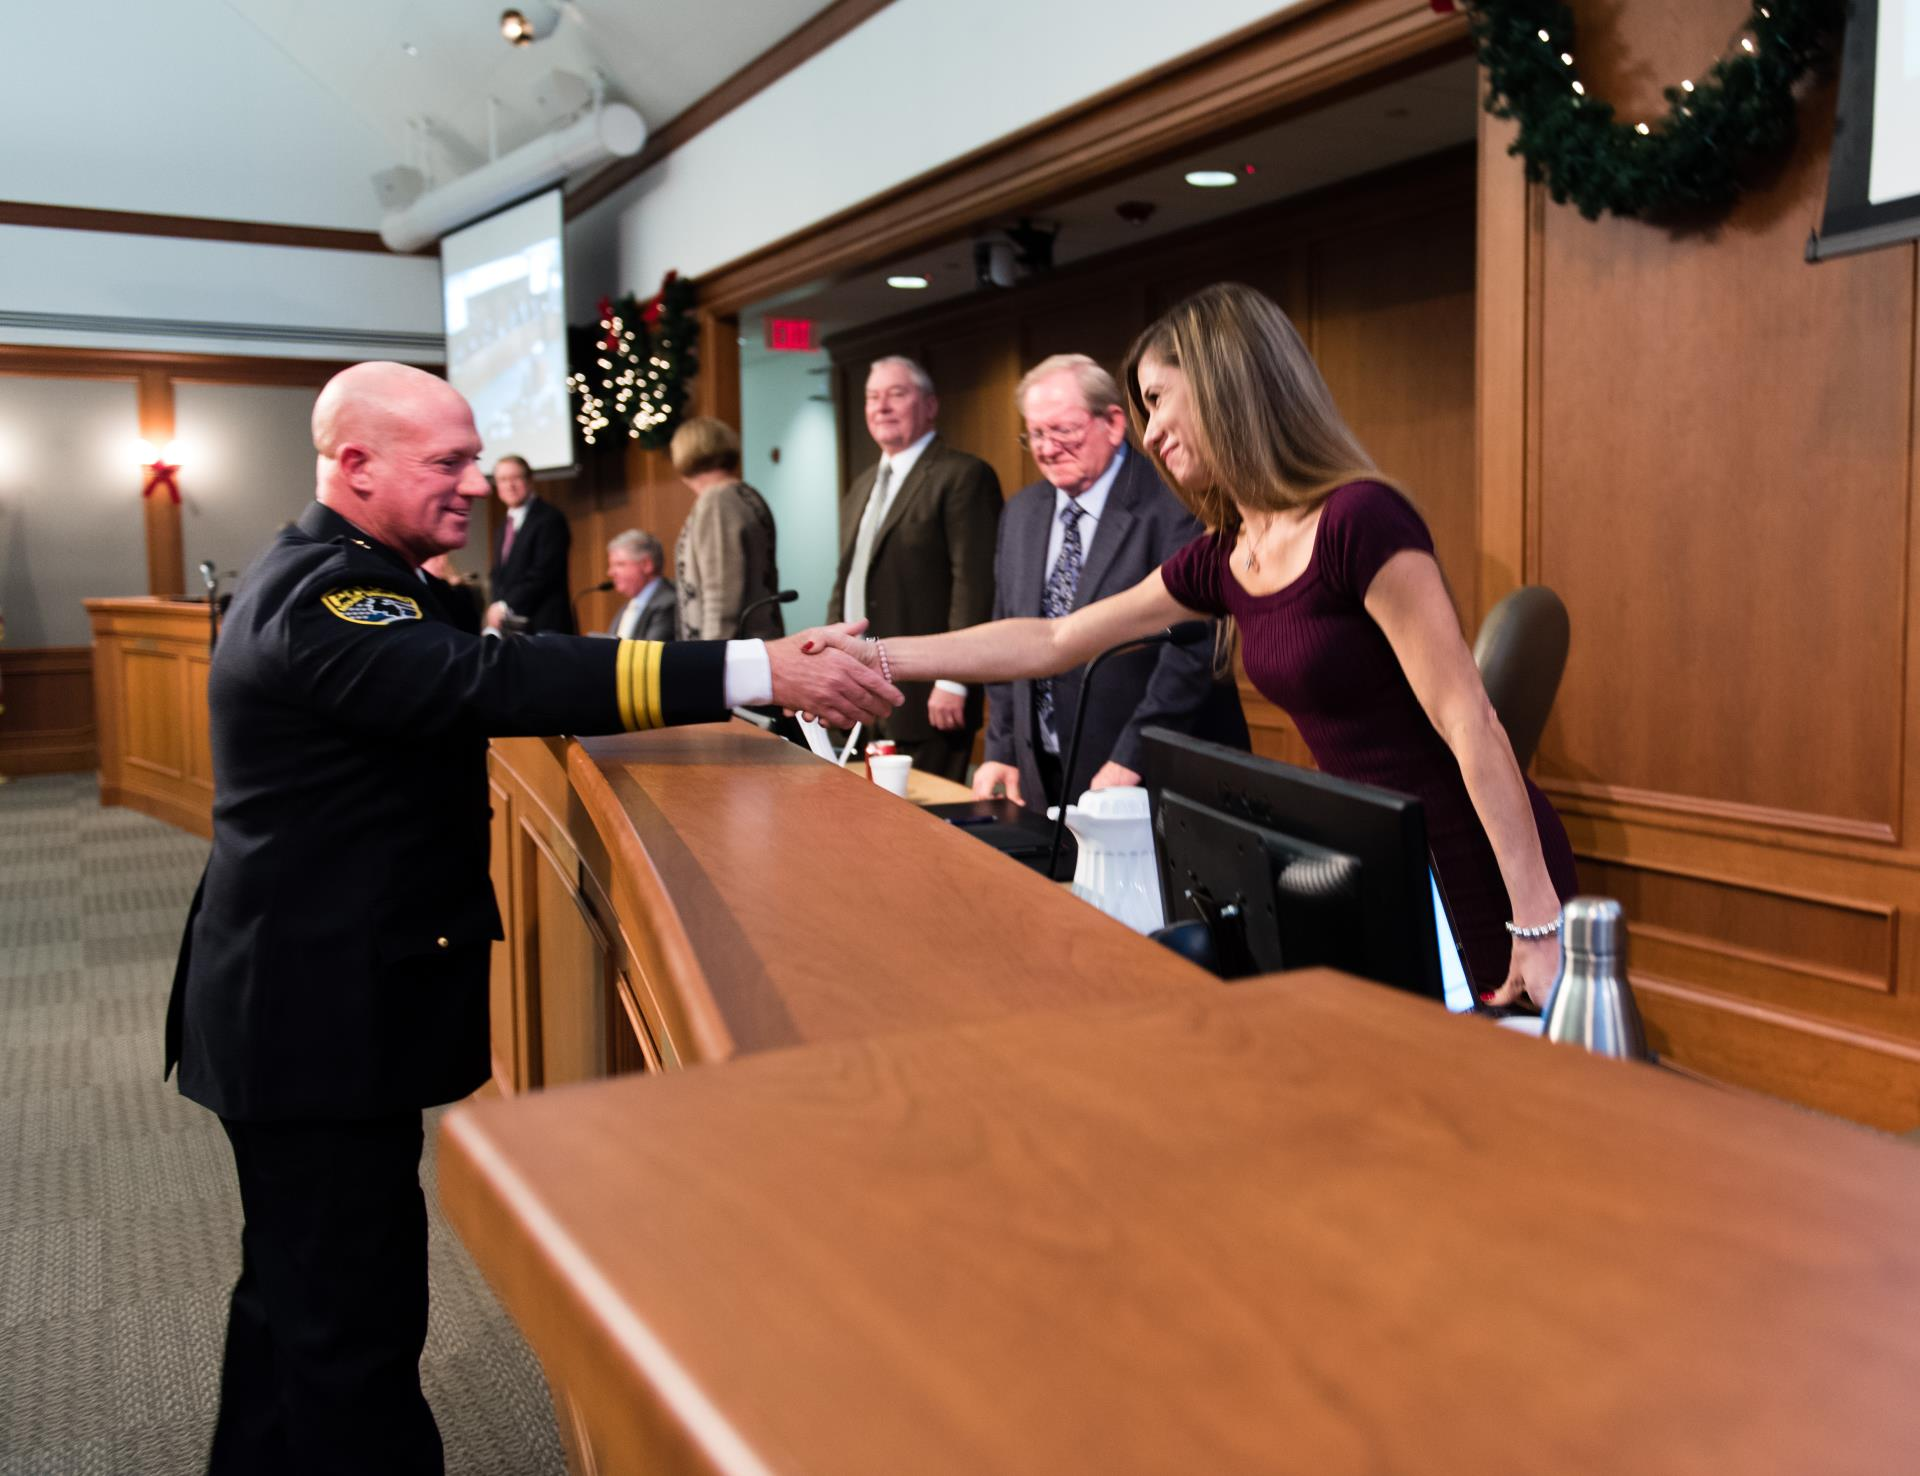 Chief Koziol Swearing-In Ceremony Final-4251